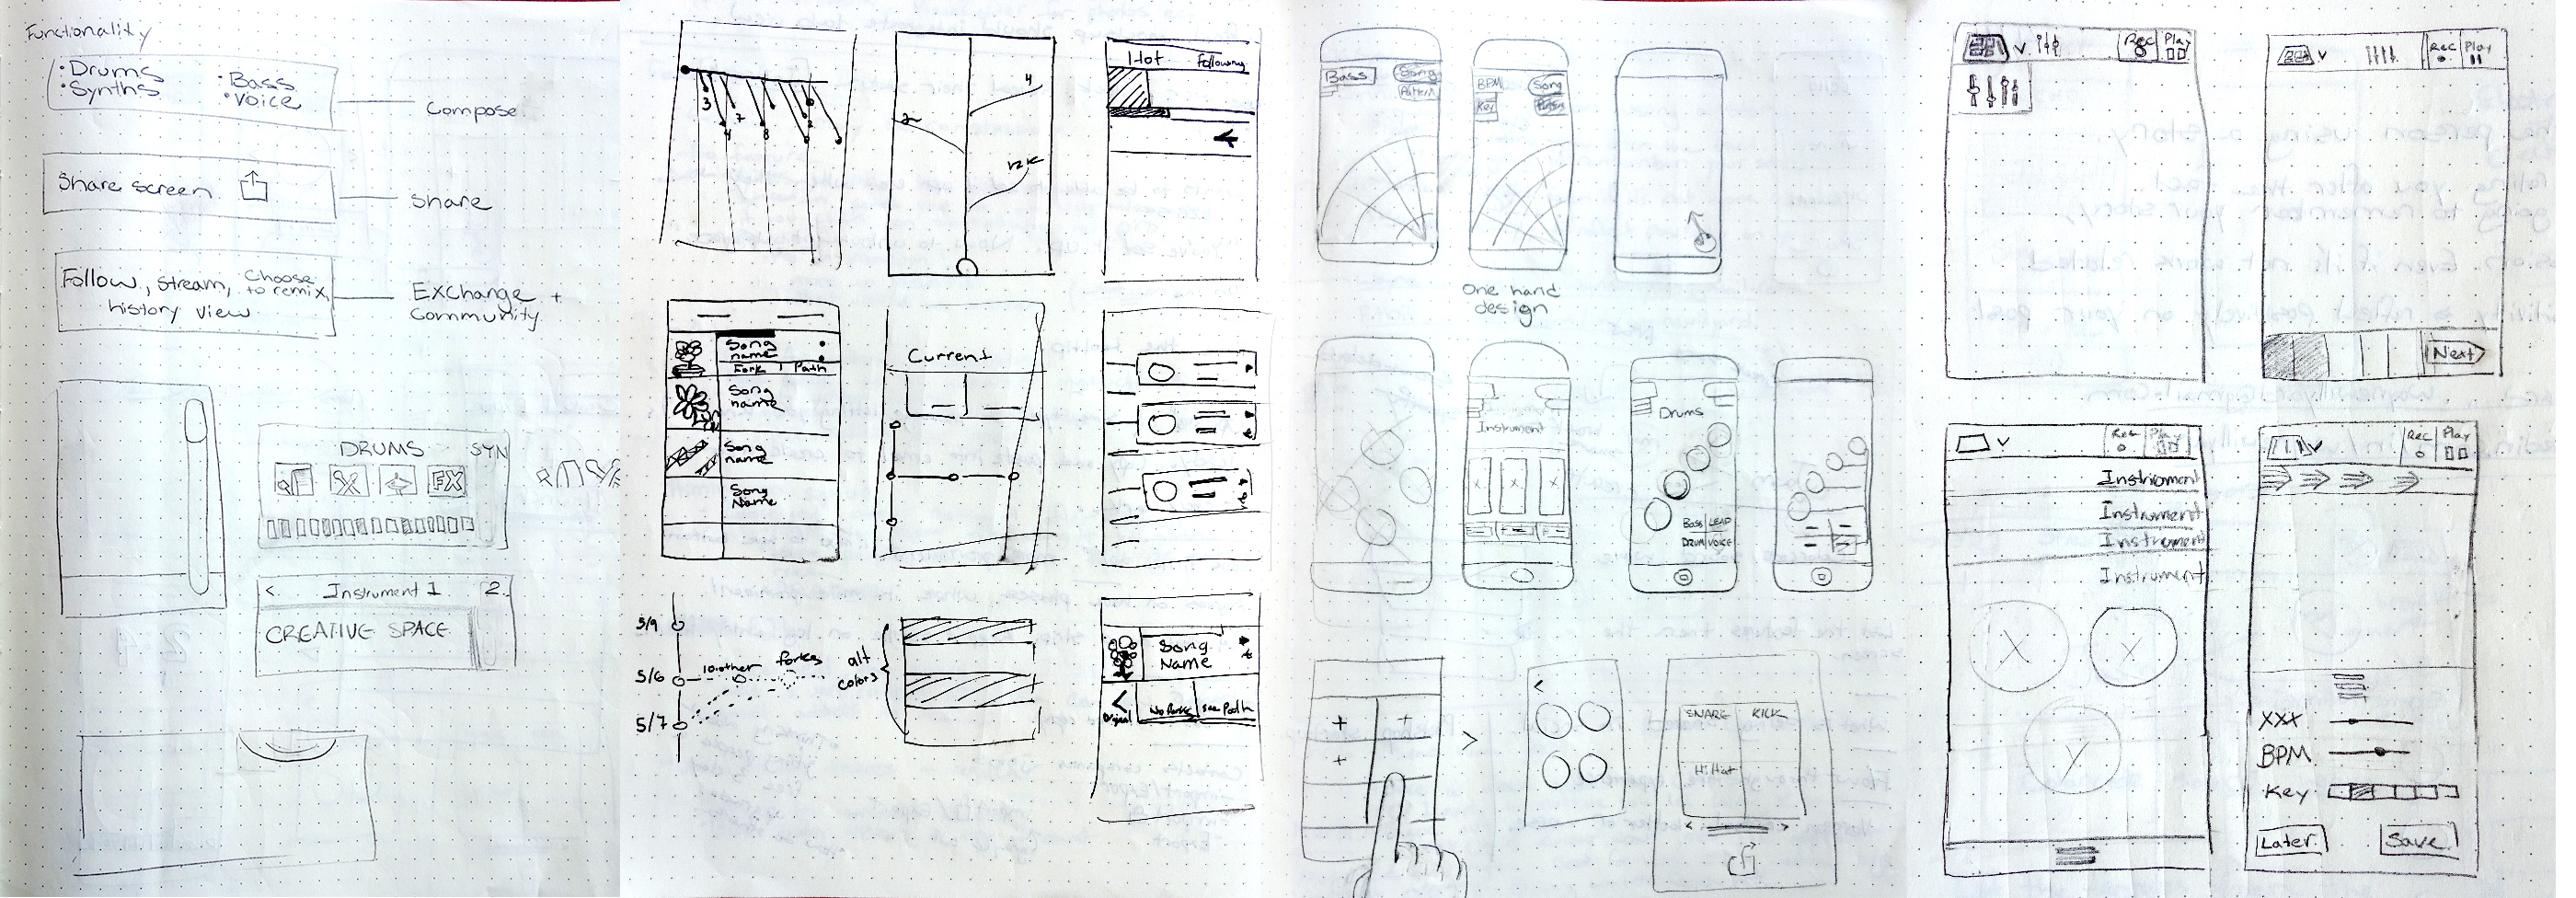 Wireframing Sketches